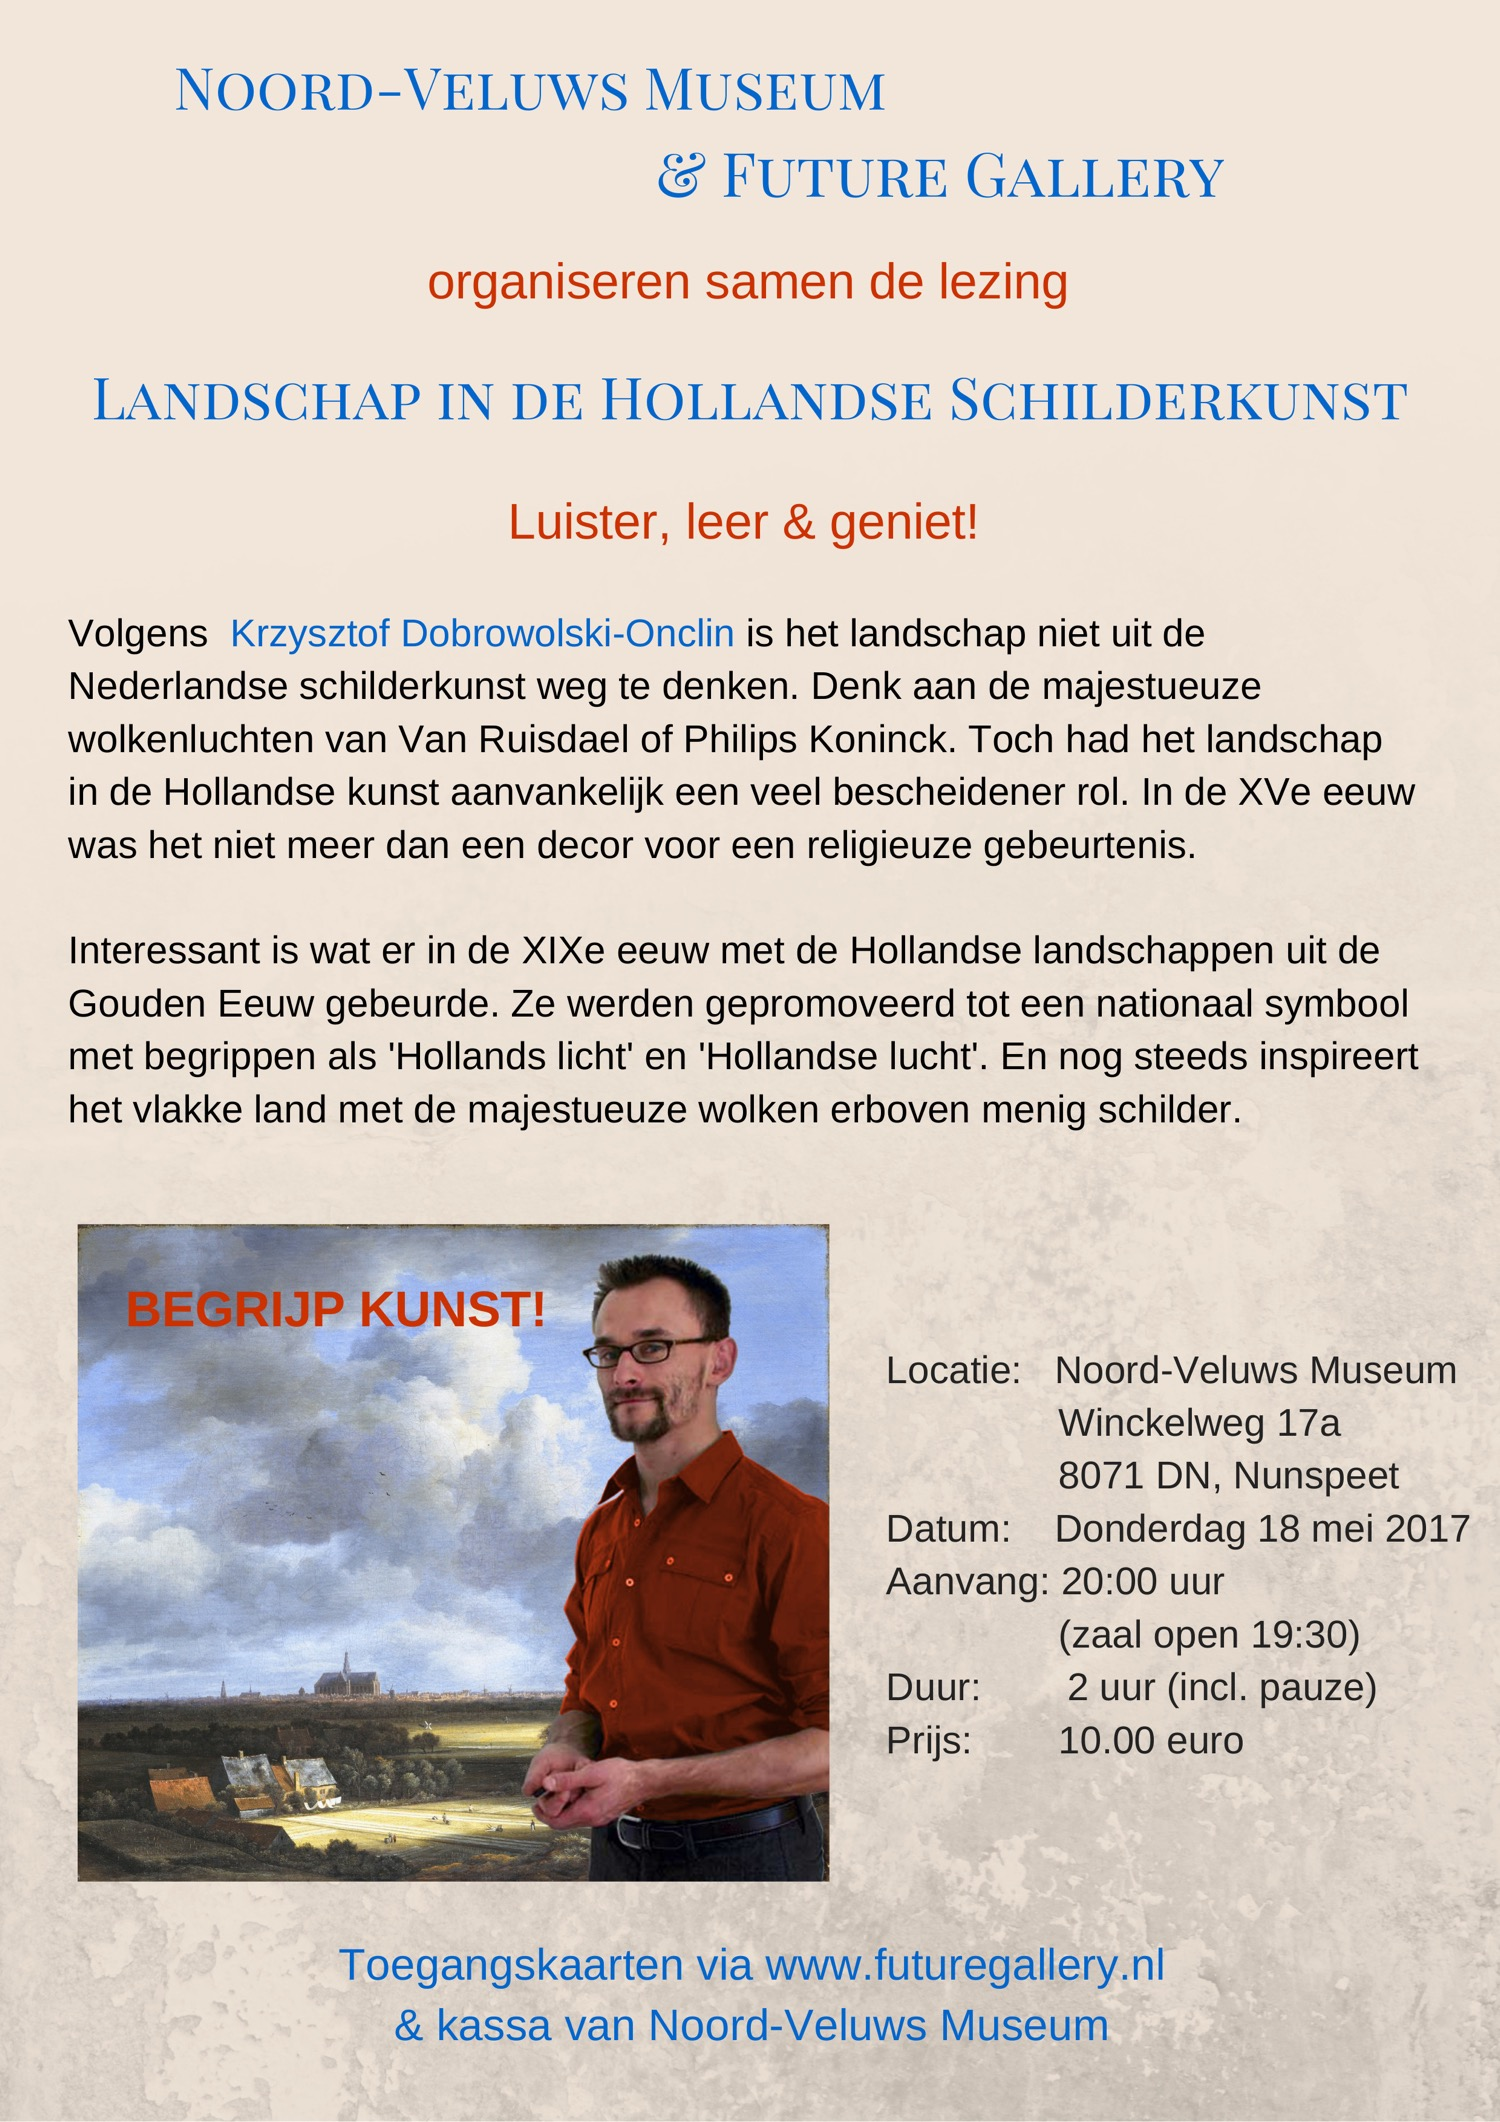 Landschap in de Hollandse Schilderkunst